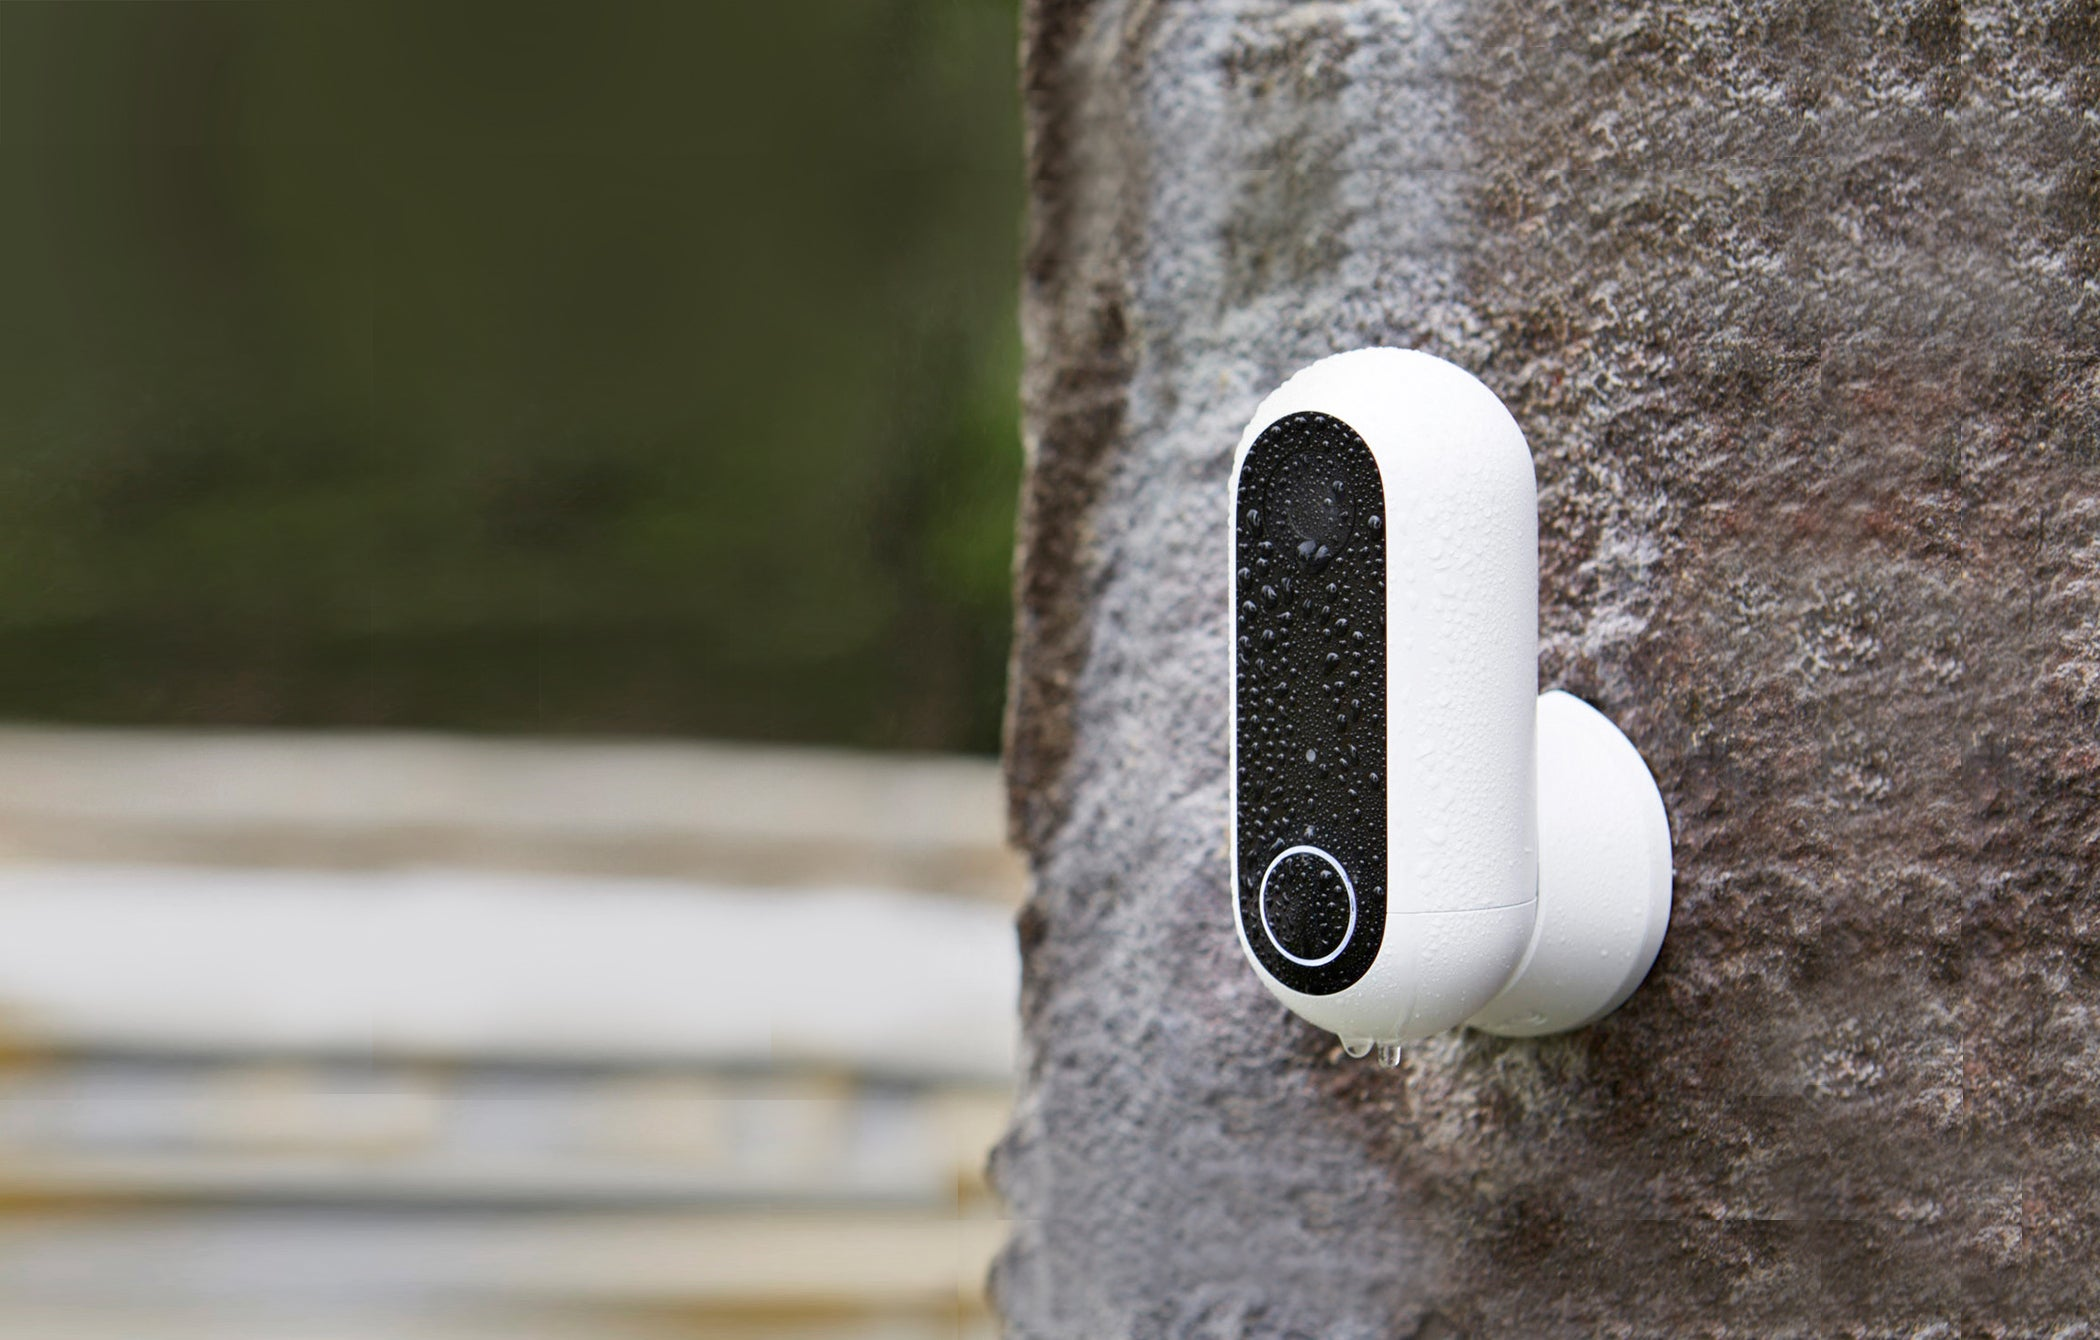 How Your Home Security Camera Detects Motion Techhive